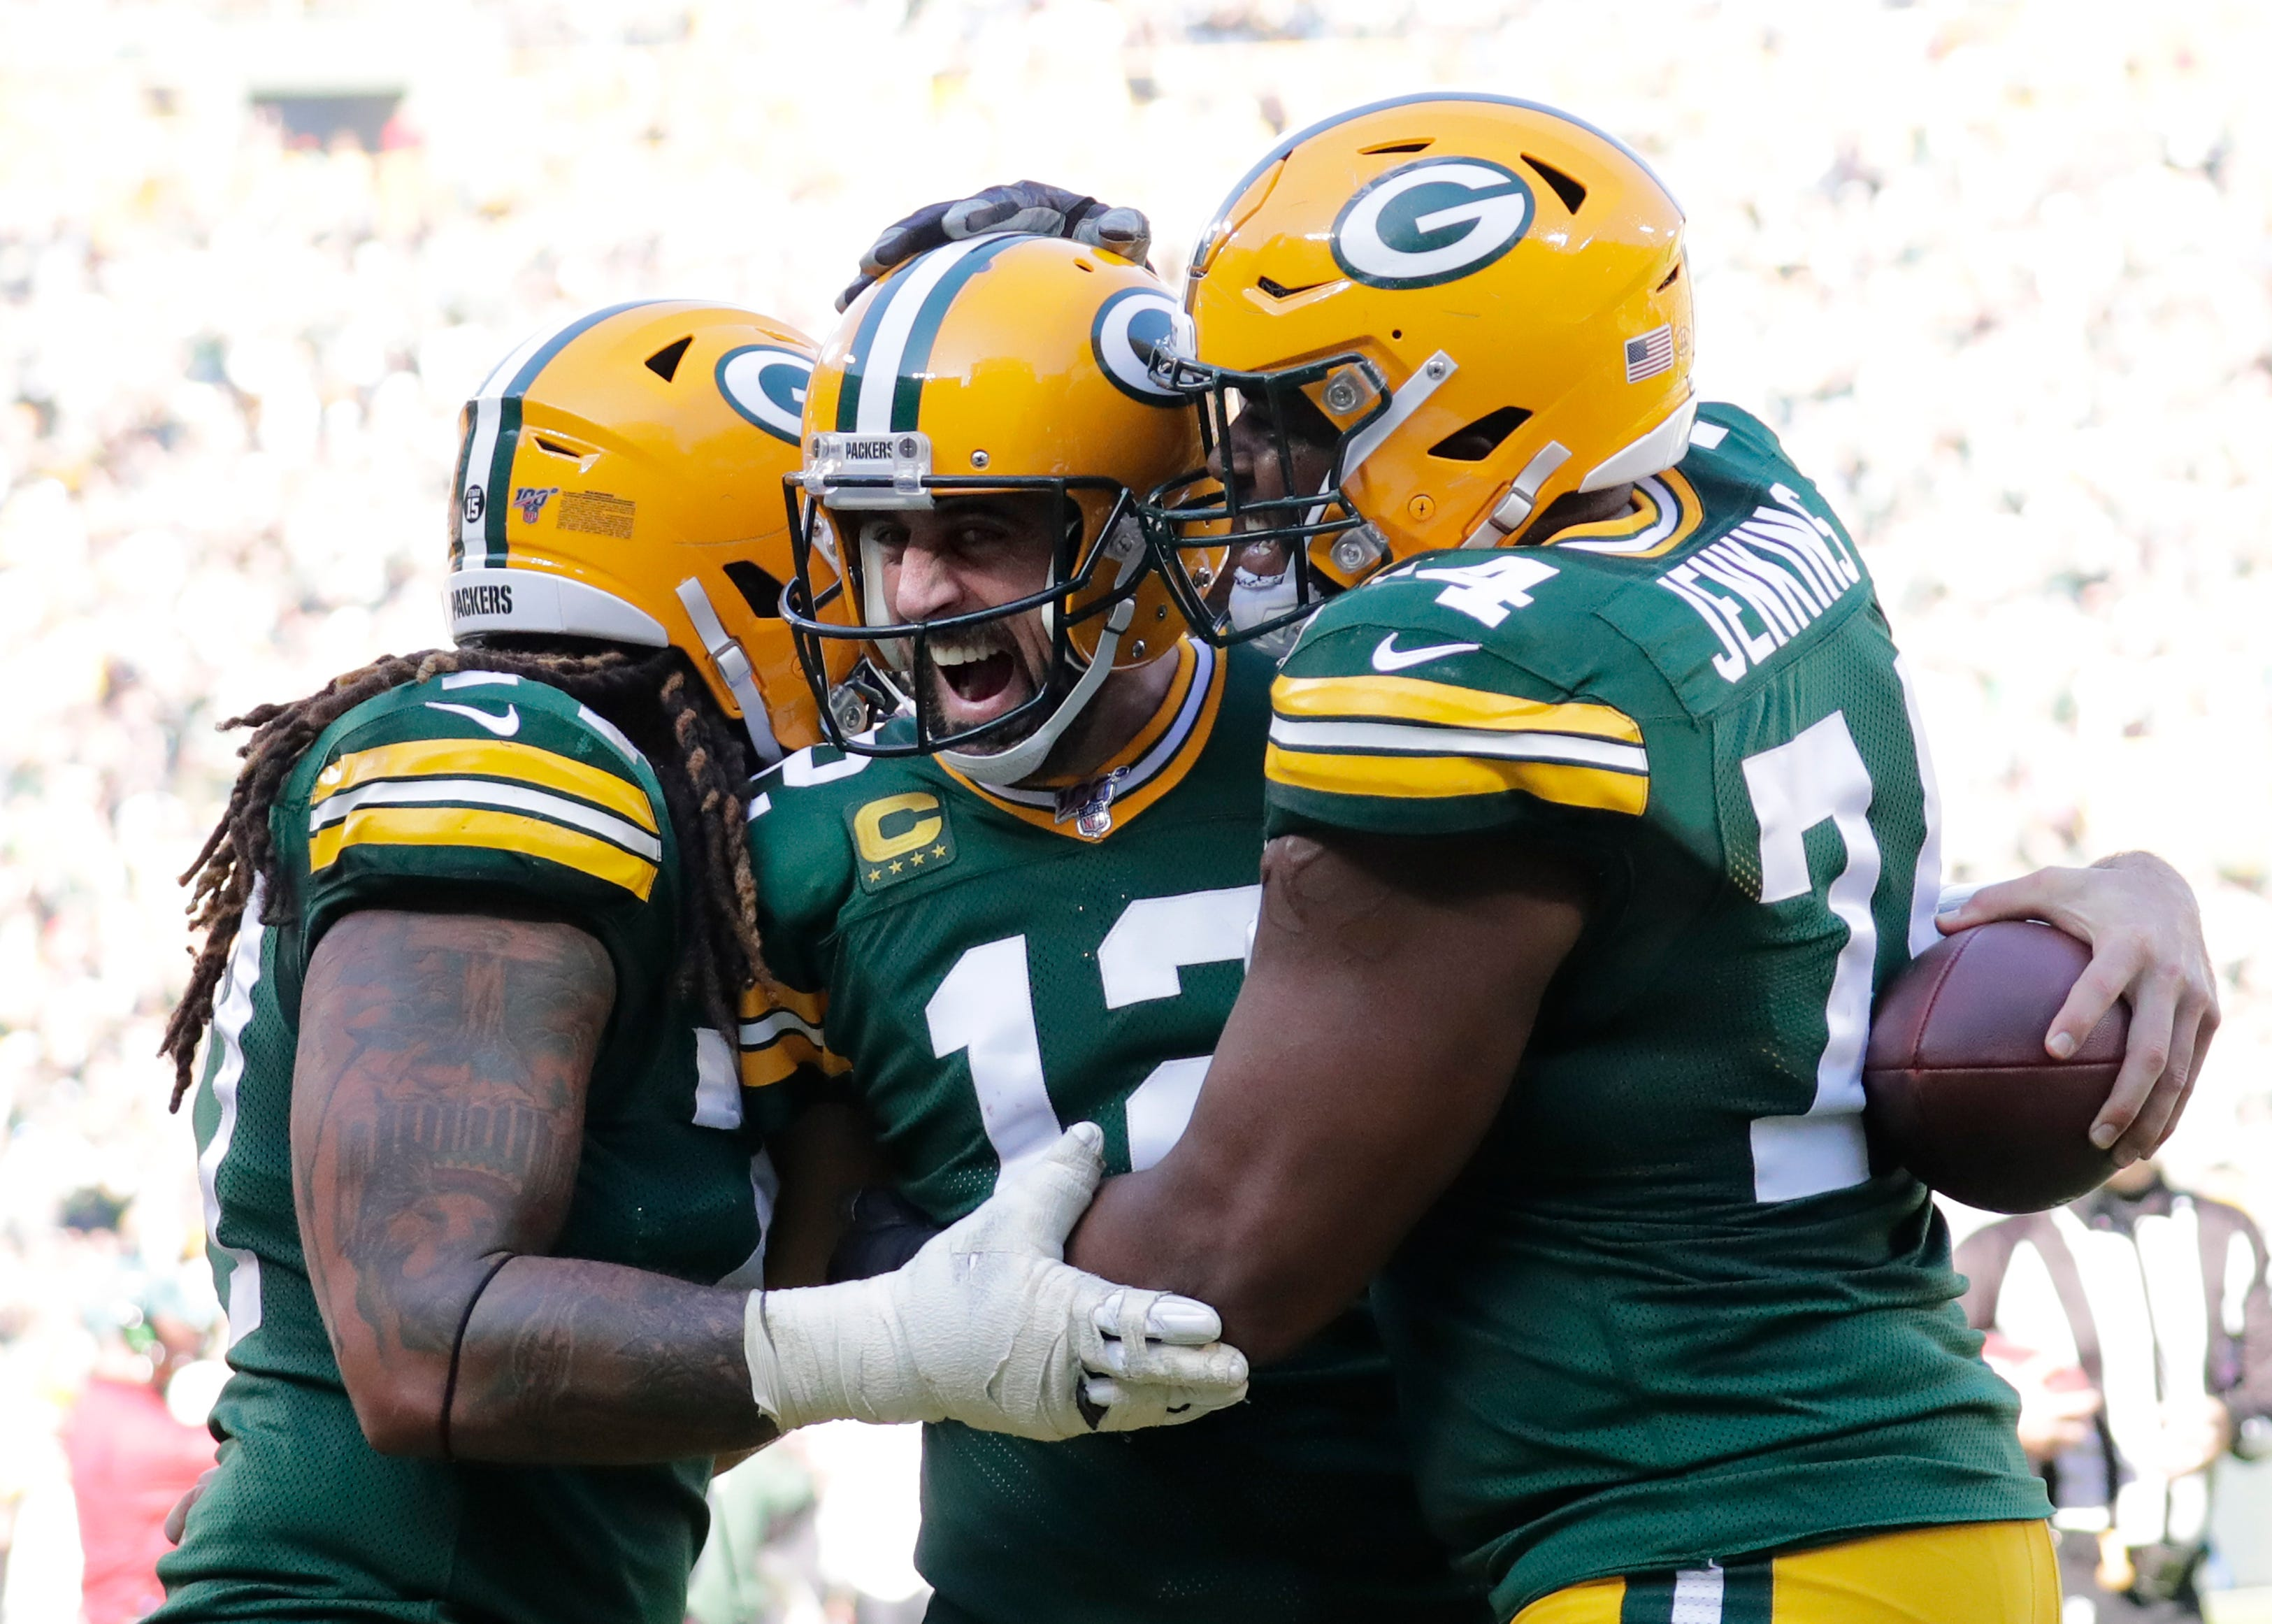 Aaron Rodgers explodes for 6 TDs as Packers roll past Raiders